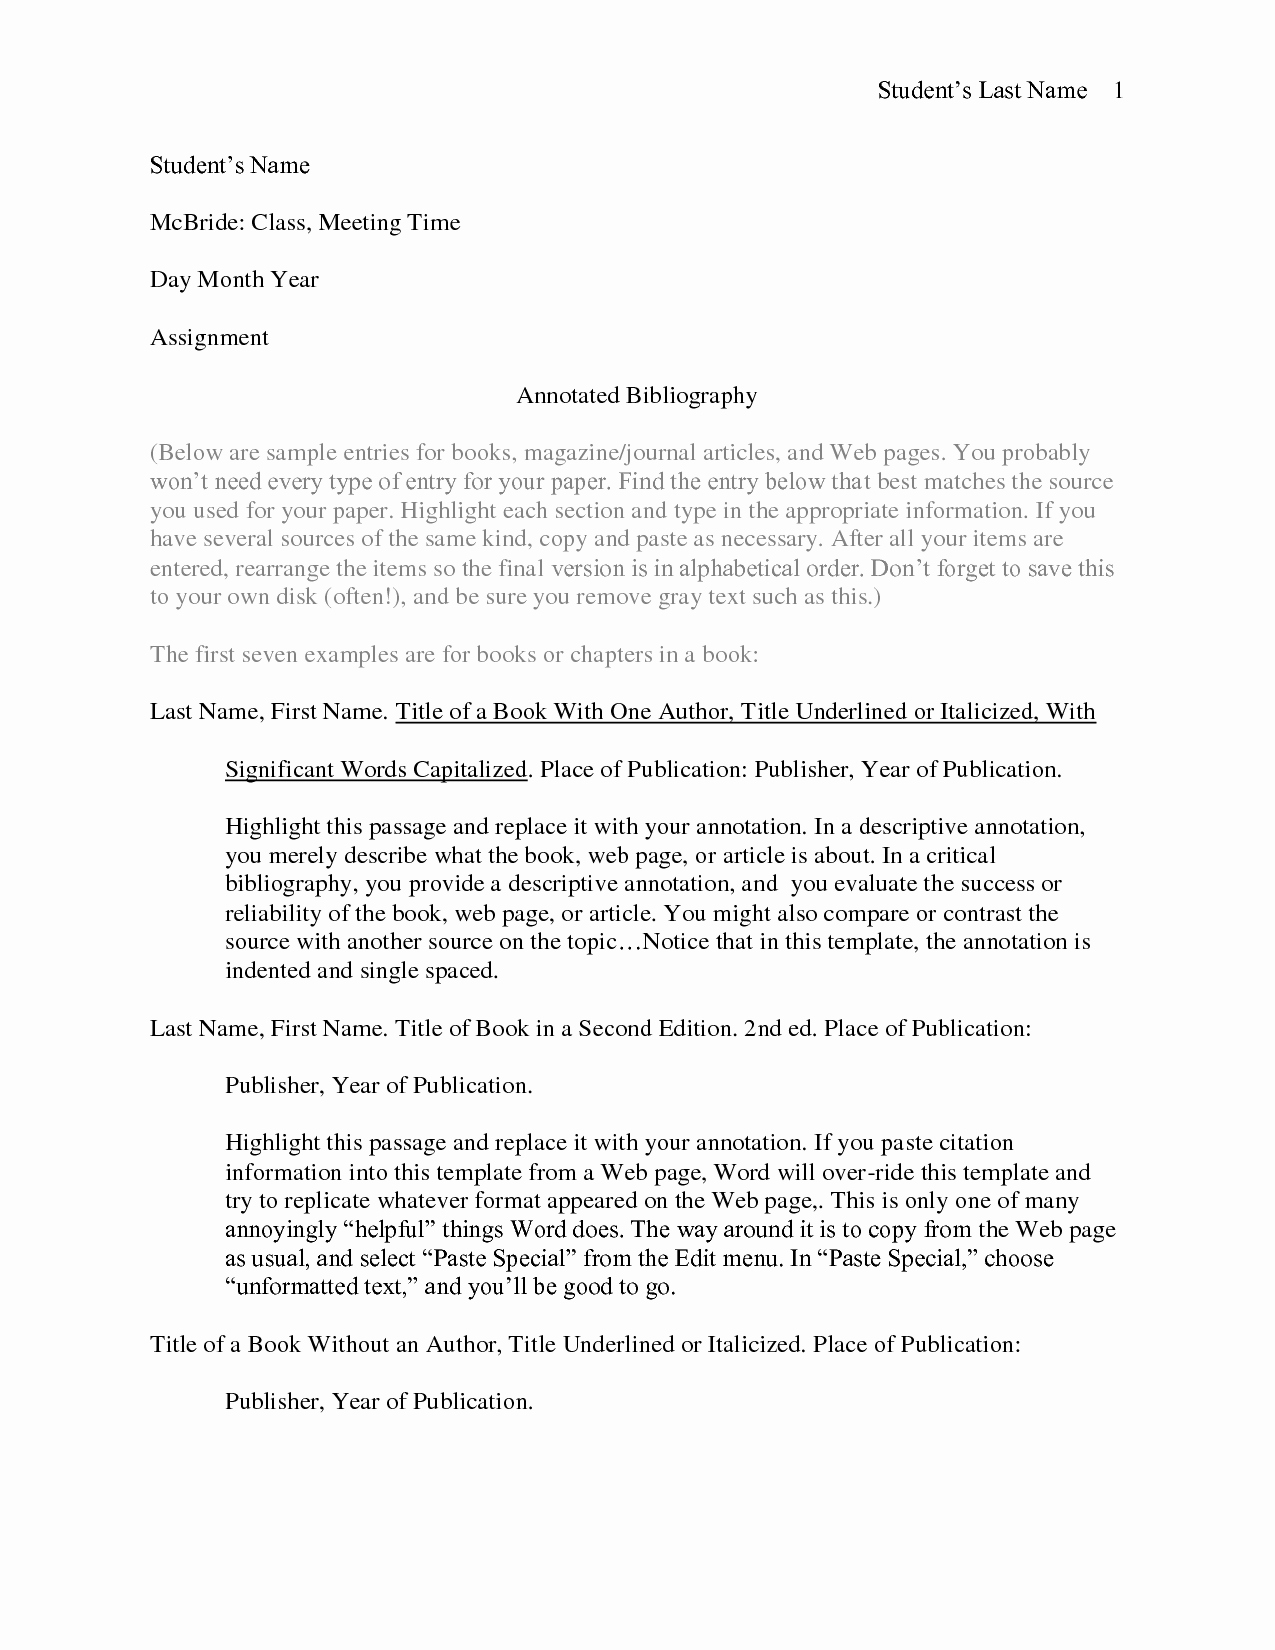 Apa Template for Open Office Fresh Custom Essay $10 Per Page Peregrine Livefoods Difference